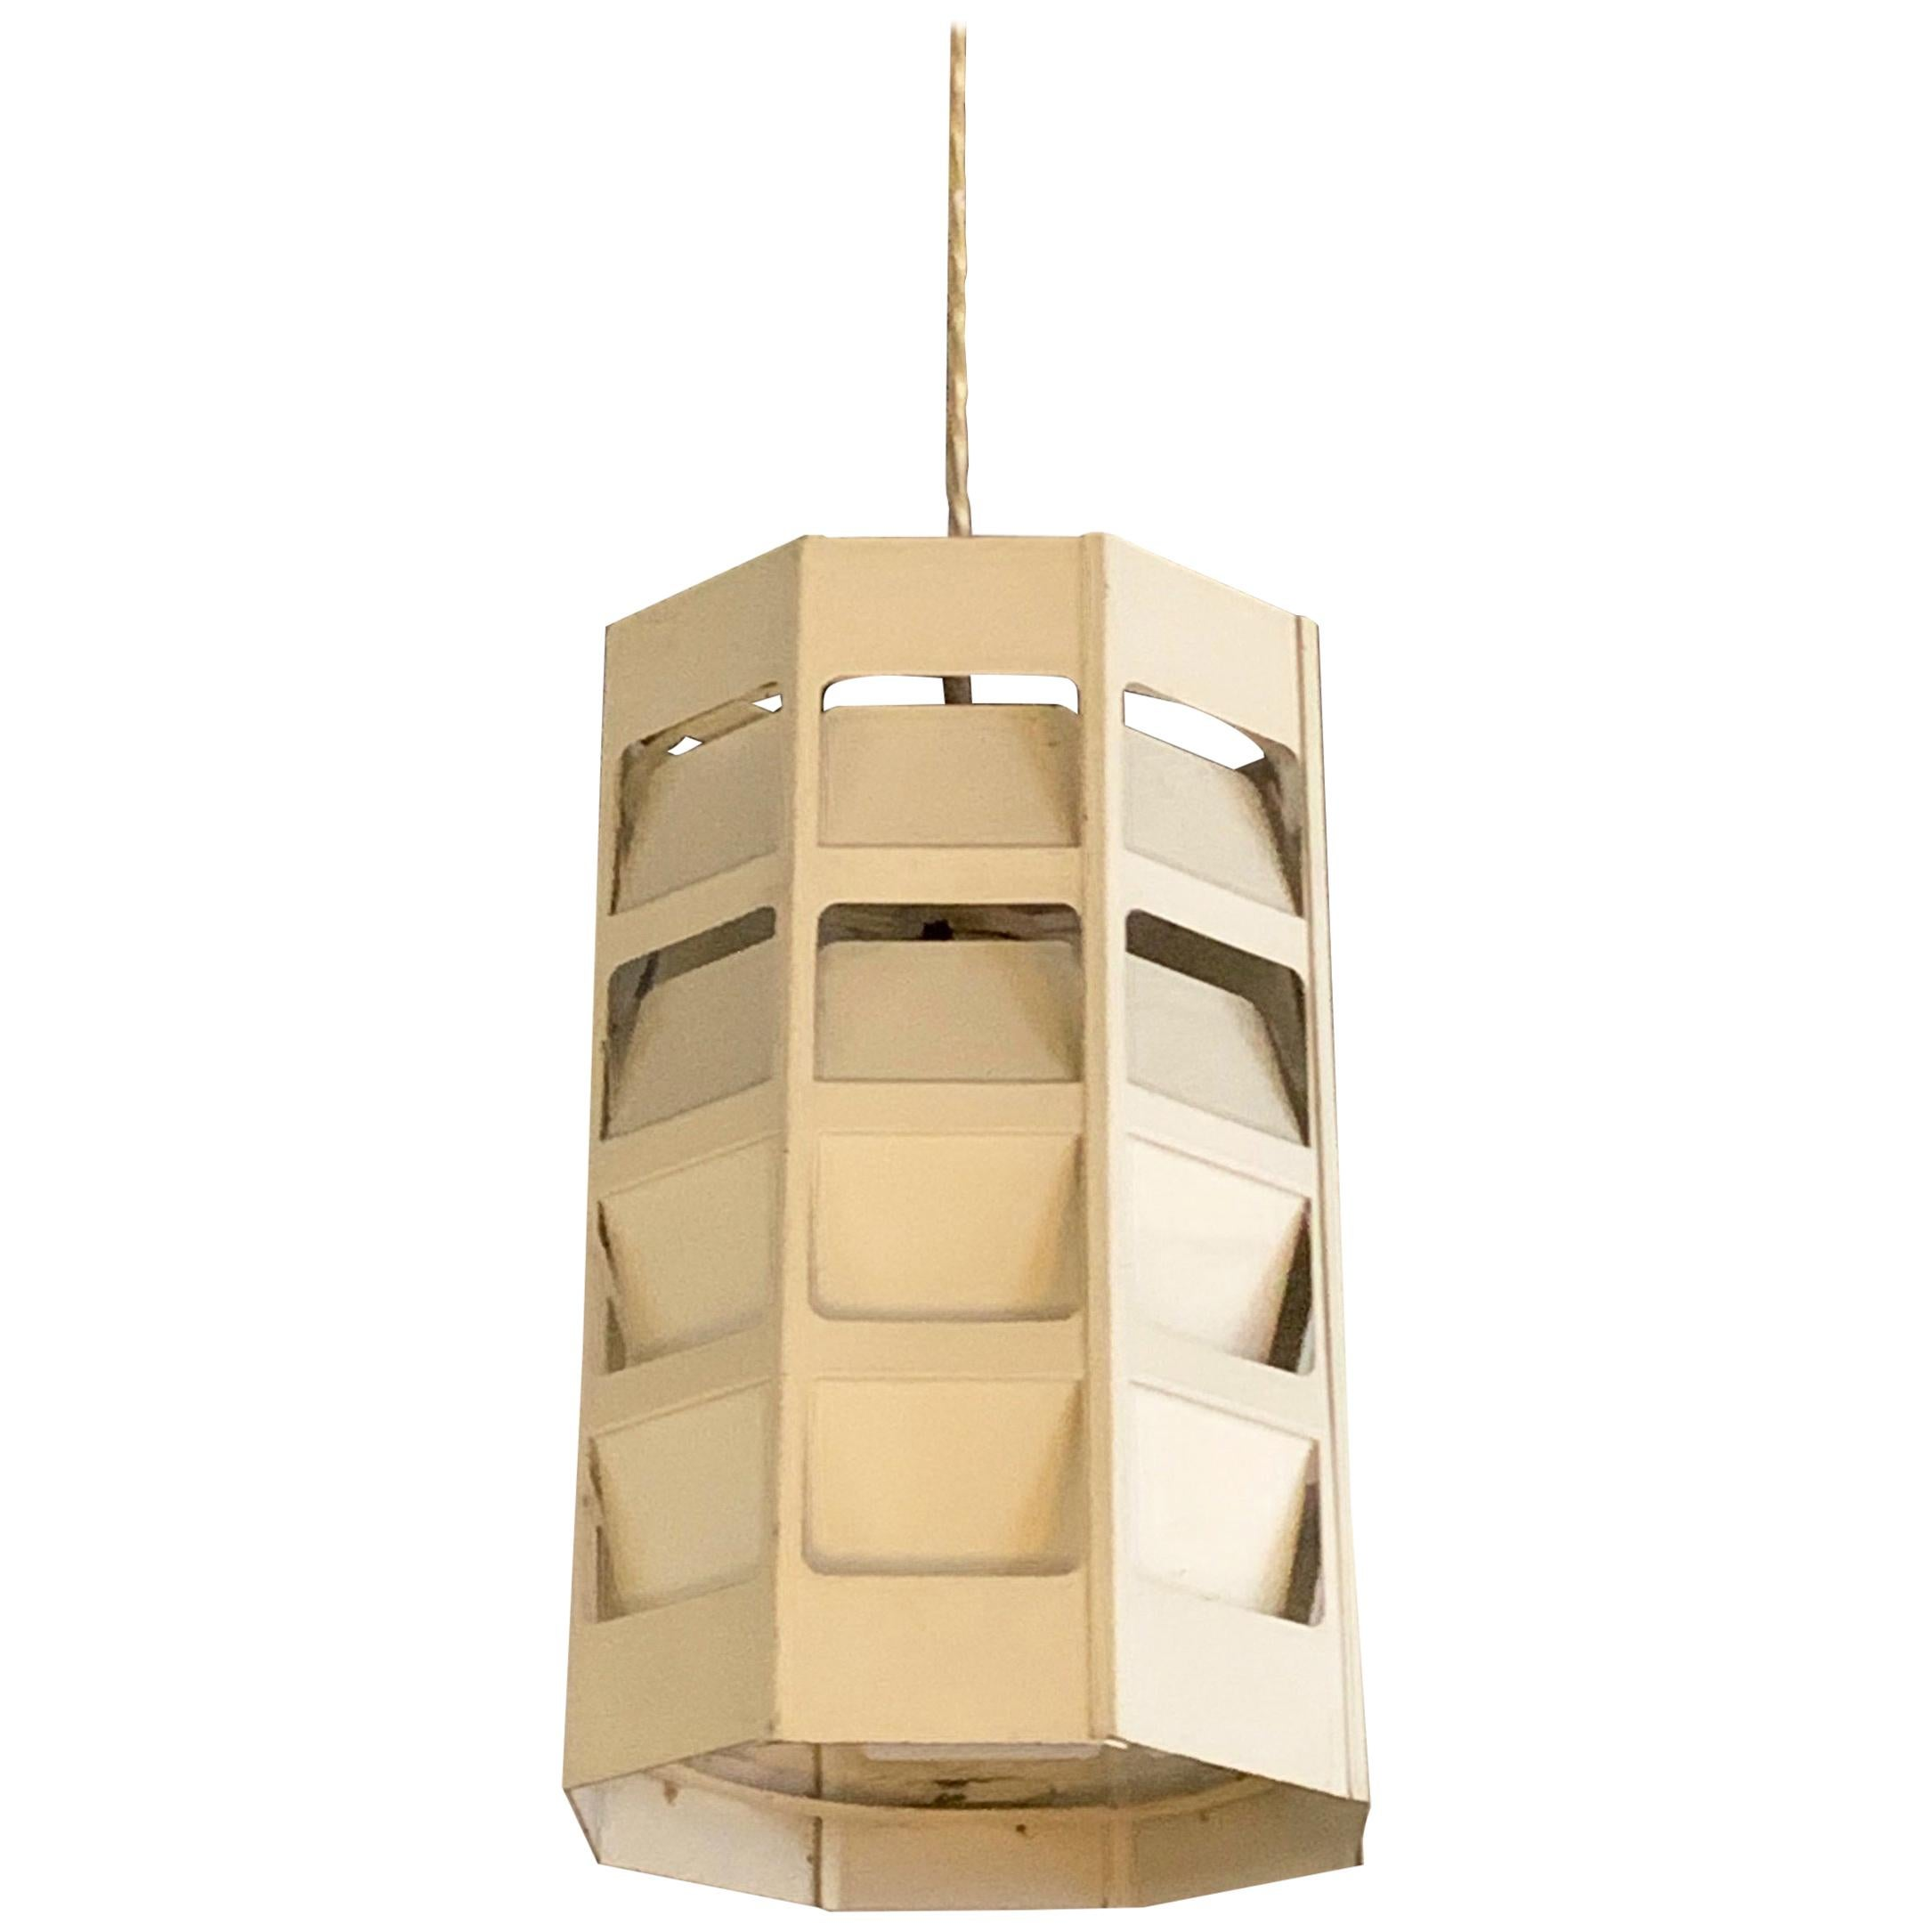 Danish Modern Perforated Metal Pendant Light by Poul Gernes for Louis Poulsen